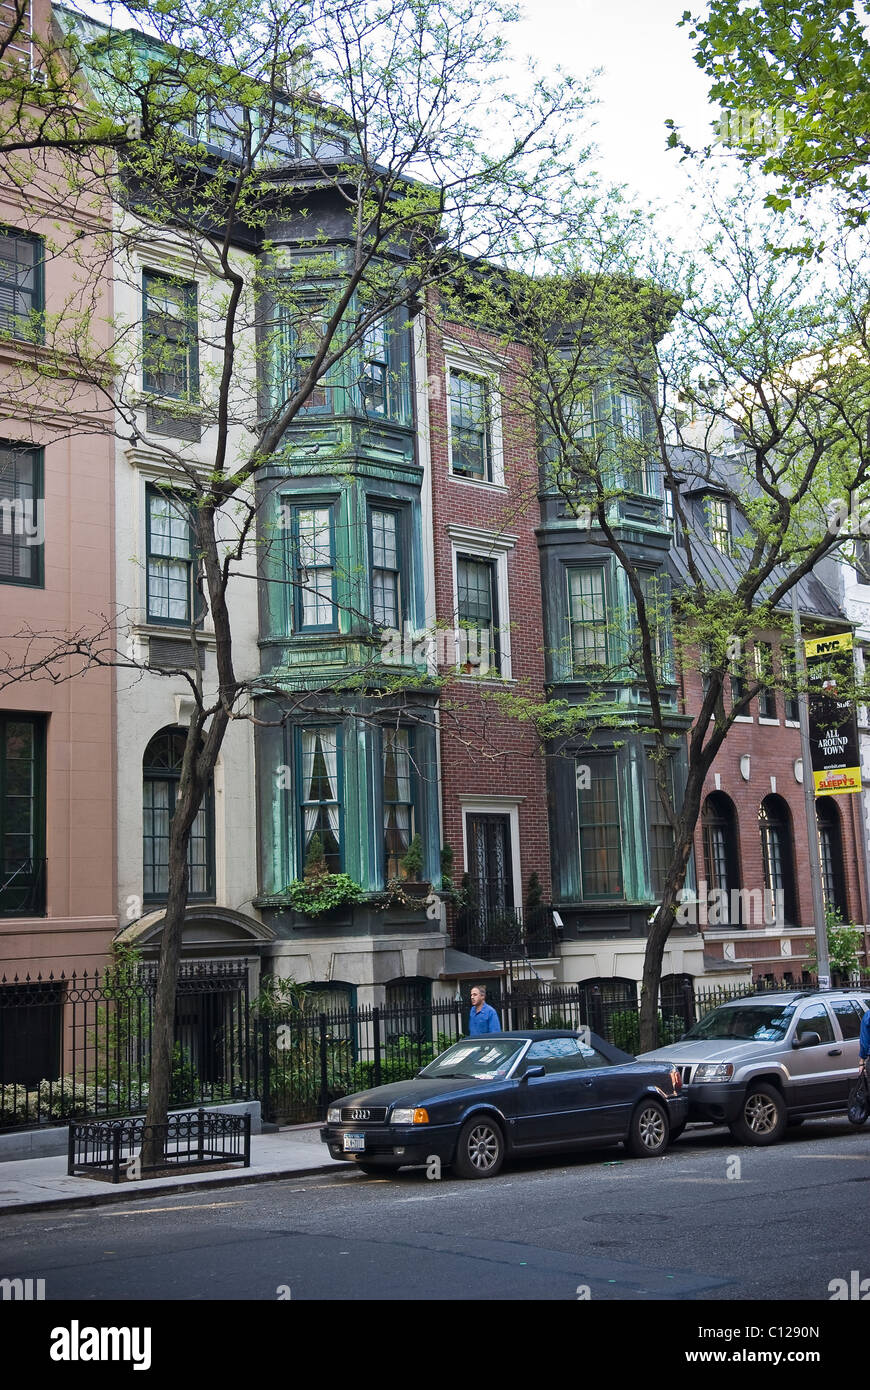 Nineteenth Century houses near Central Park, Manhattan, New York City, USA - Stock Image